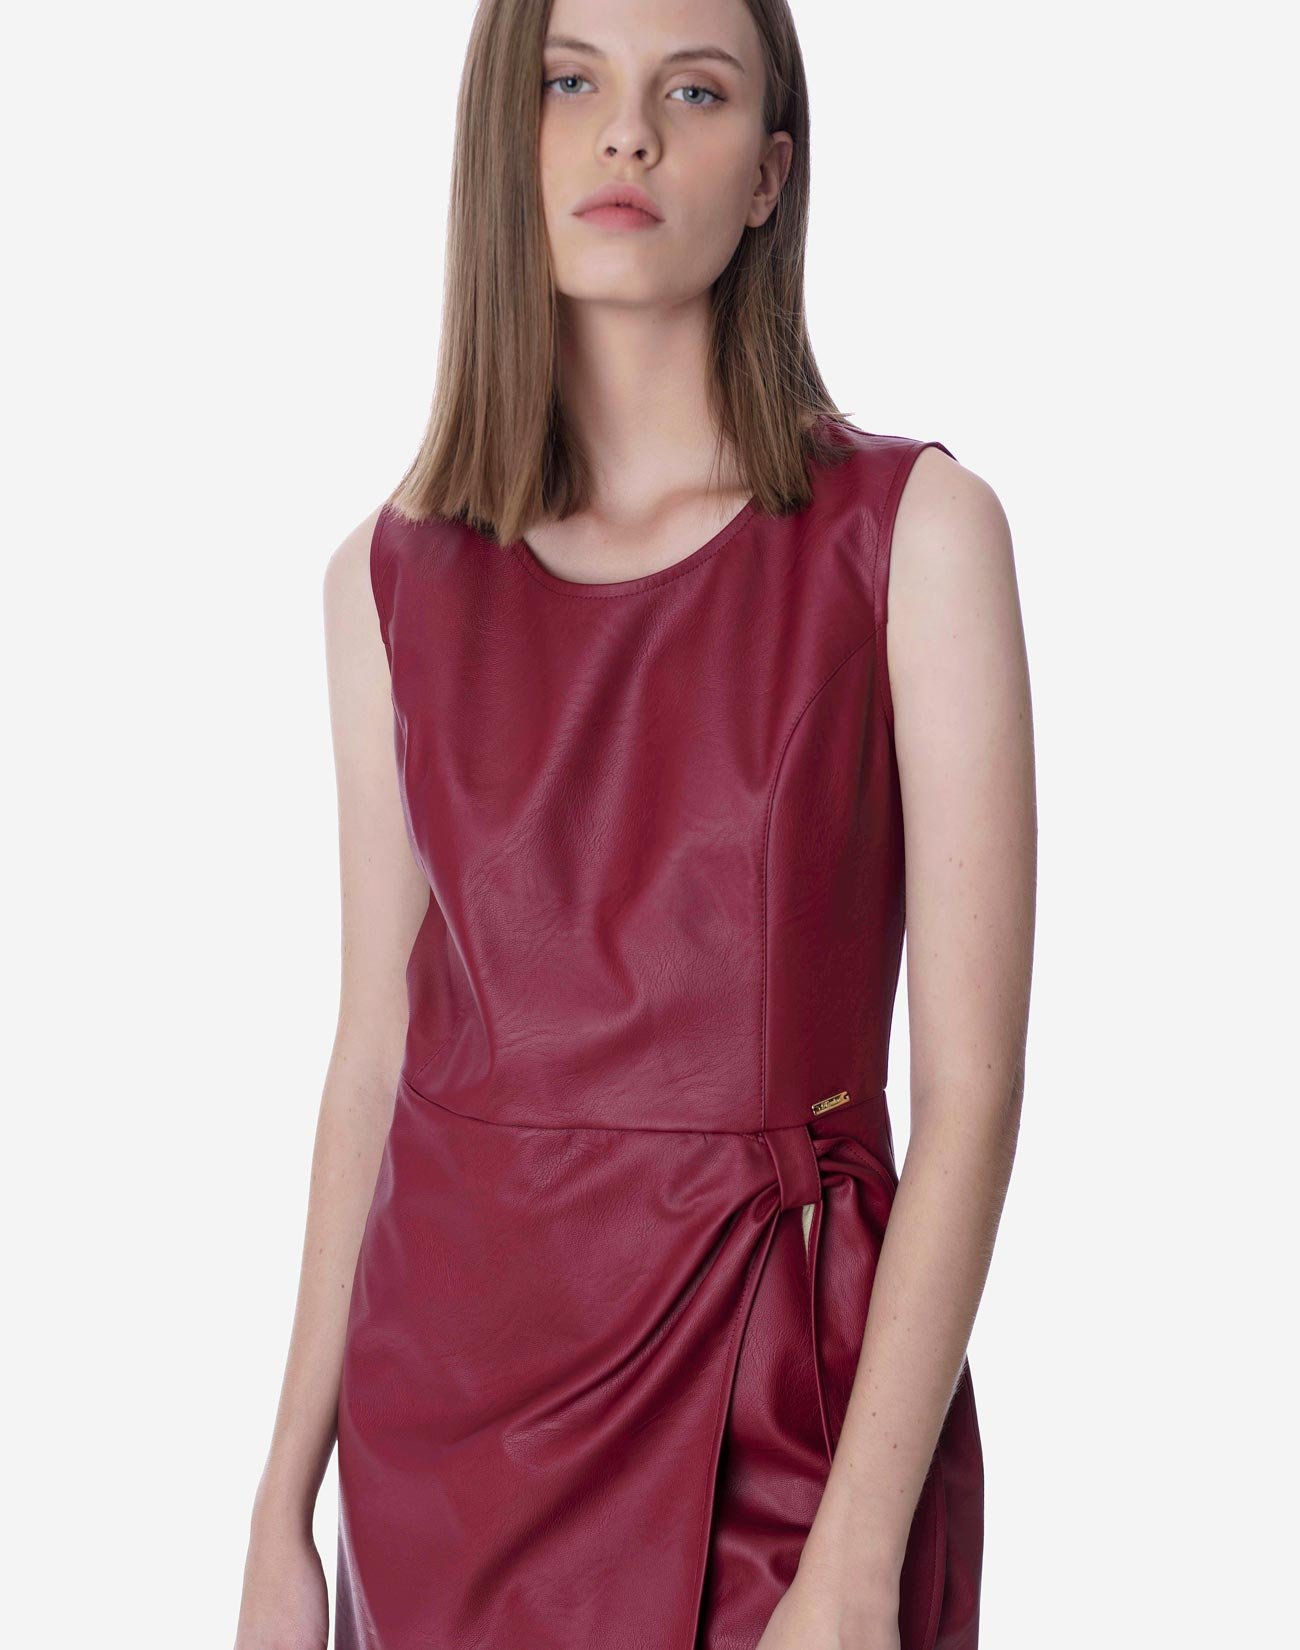 Mini faux leather dress with knot detail